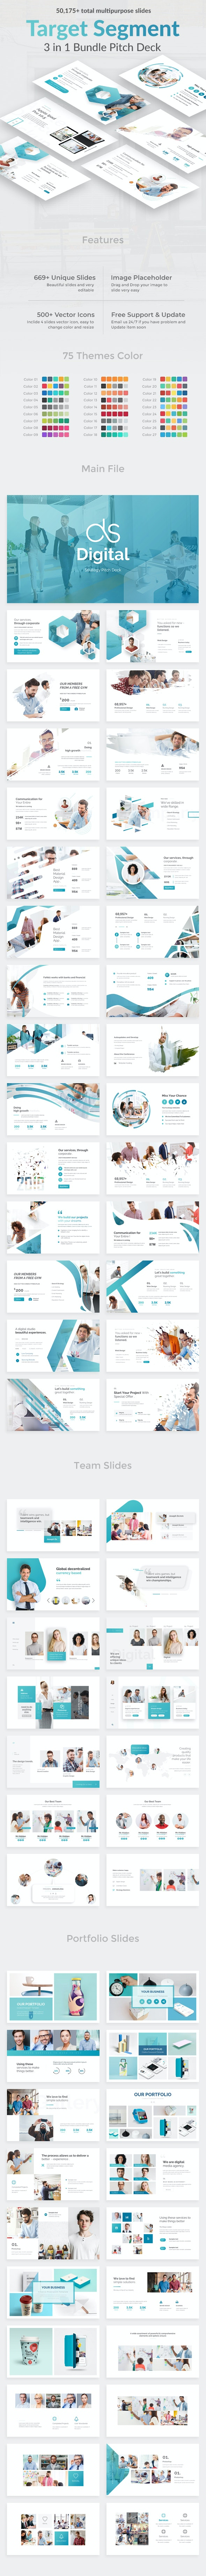 Target Segment 3 in 1 Pitch Deck Bundle Powerpoint Template - Business PowerPoint Templates